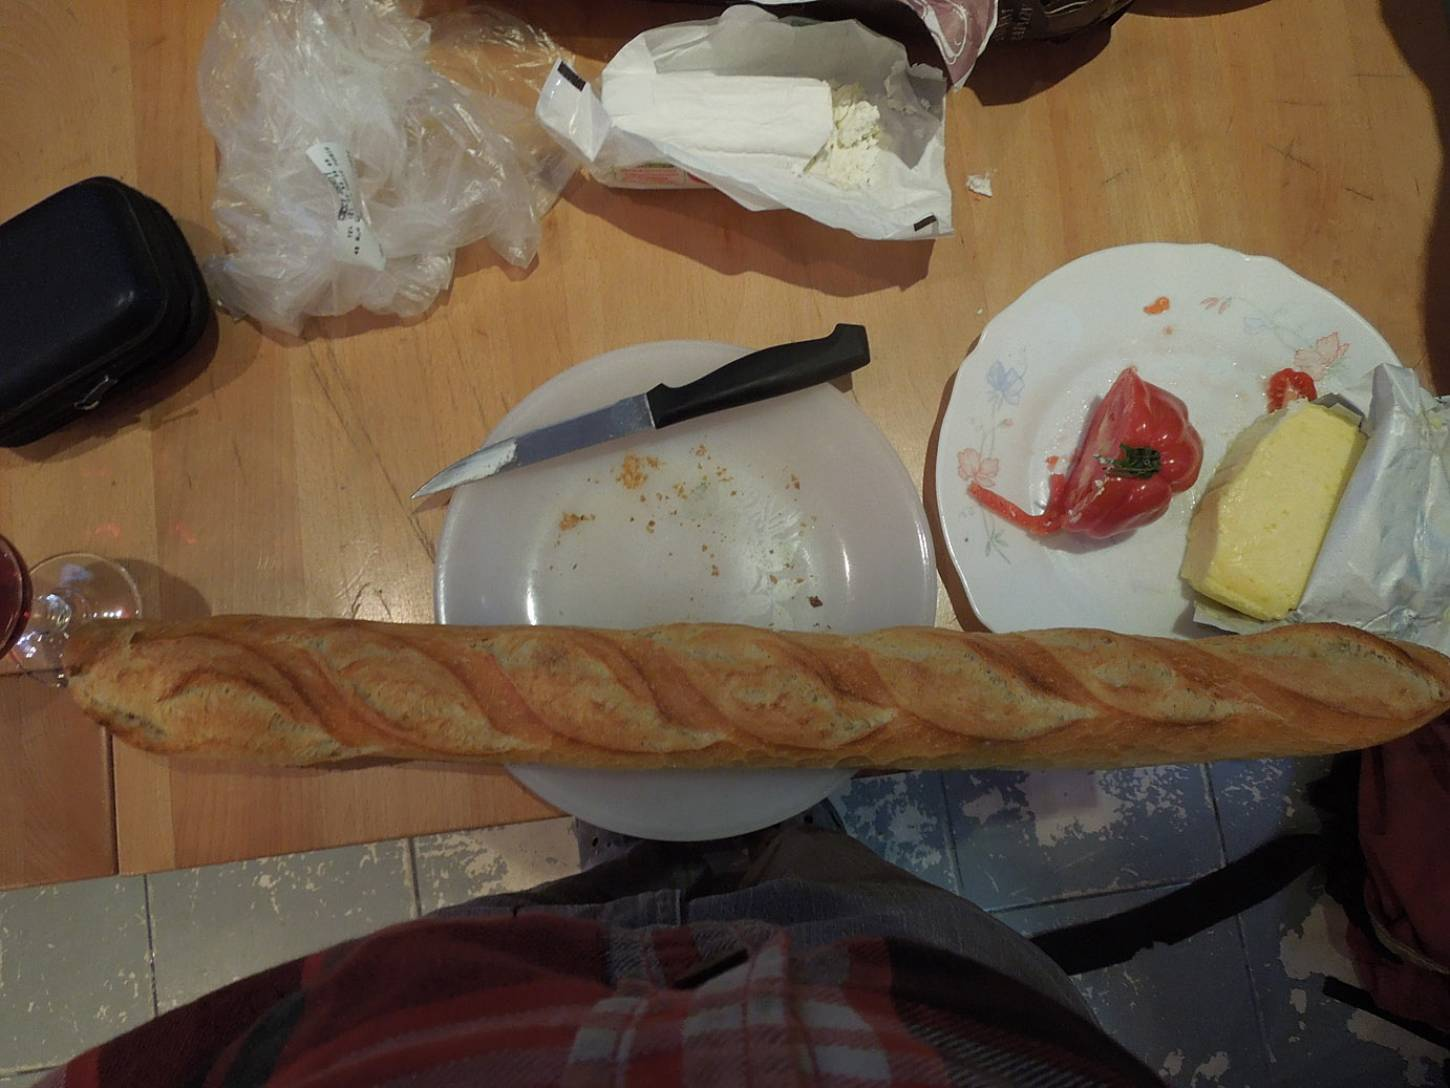 bakers and baguettes of Paris - <a href='http://www.tripadvisor.co.uk/Restaurant_Review-g187147-d2201626-Reviews-Boulangerie_Alexine-Paris_Ile_de_France.html' target_blank>Boulangerie Alexine</a> (Alexandre Planchais)  #10 in 2008 #8 in 2007 - 7:32pm&nbsp;1<sup>st</sup>&nbsp;Jun.&nbsp;'15